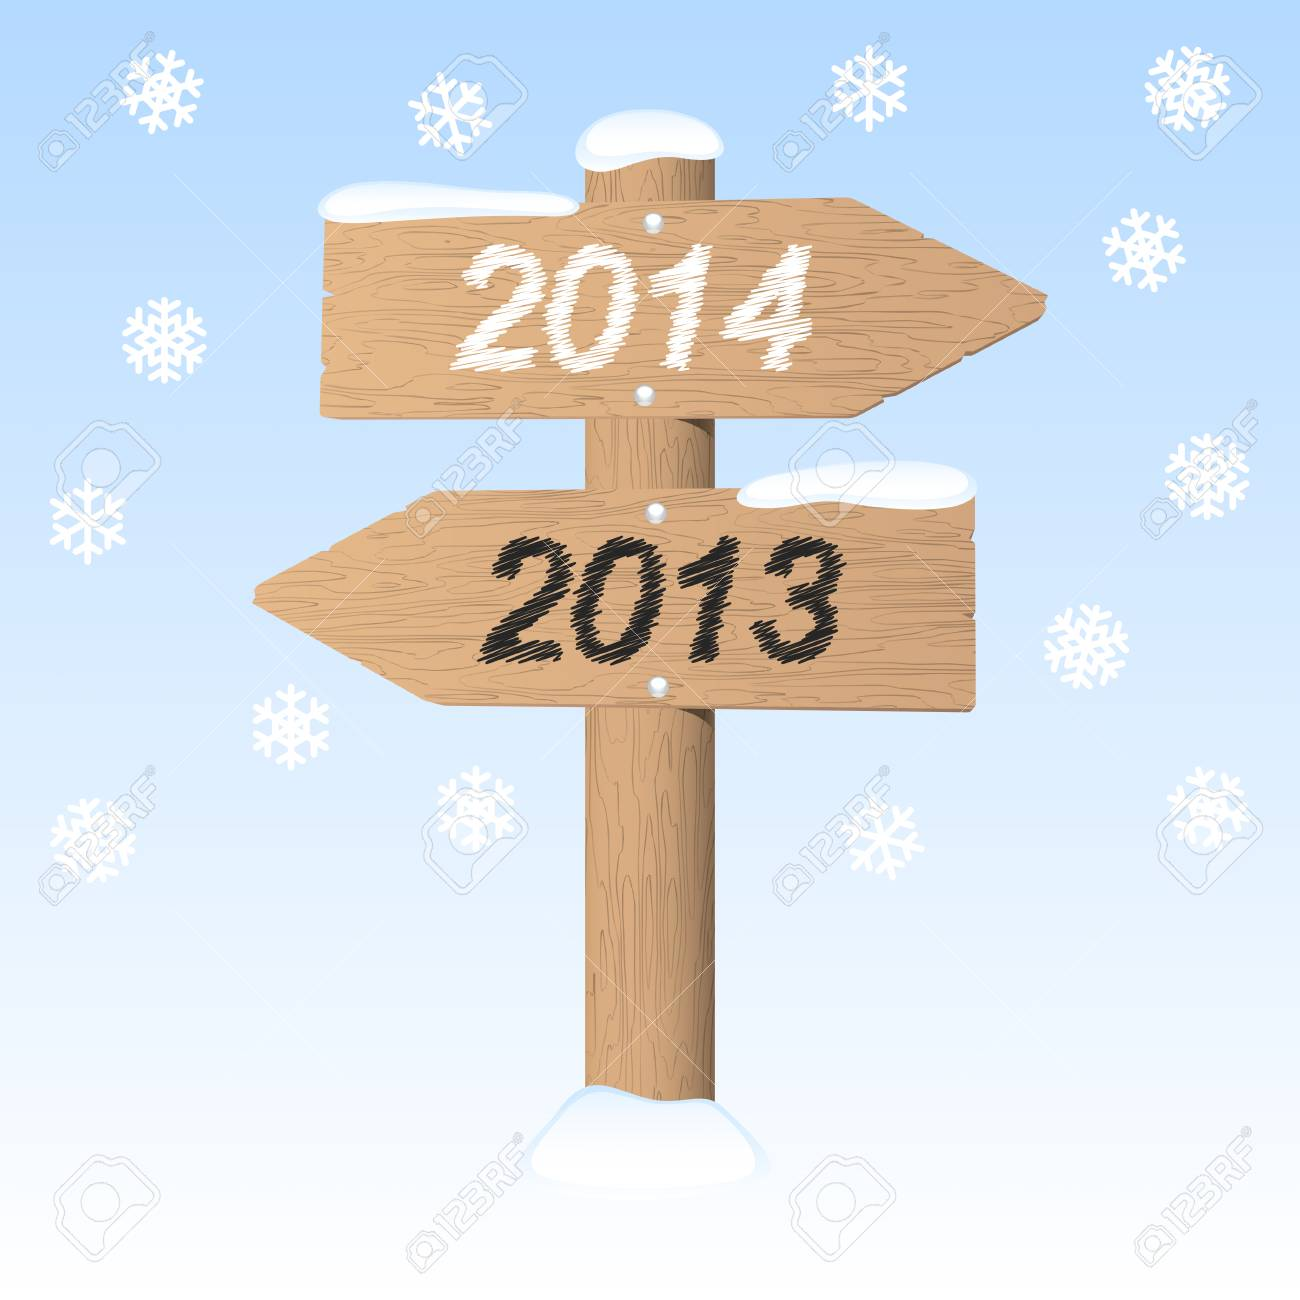 New Year 2014 sign. Vector illustration. Stock Vector - 24167971